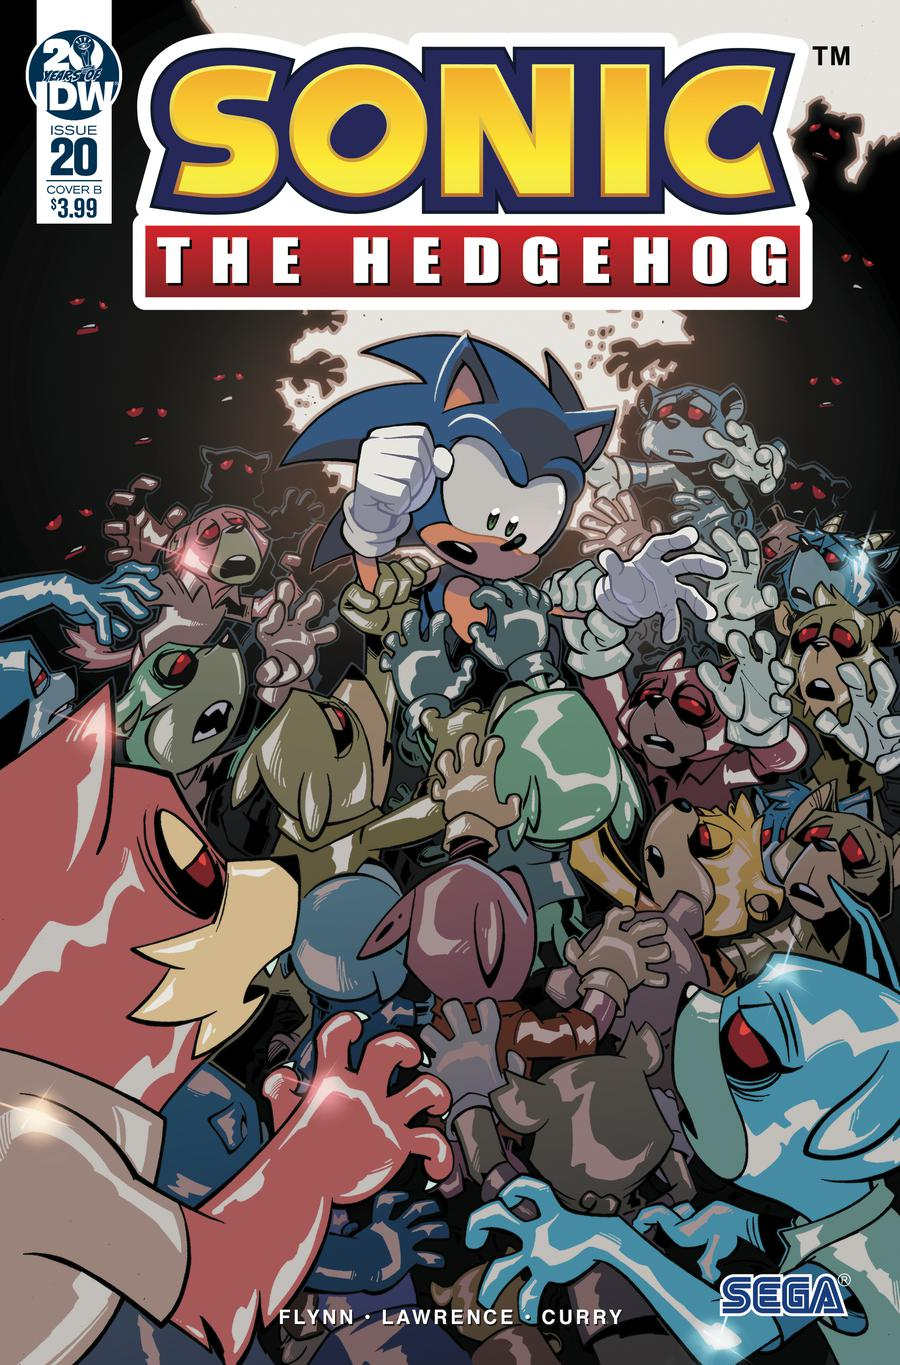 Sonic The Hedgehog Vol 3 #20 Cover B Variant Jack Lawrence Cover